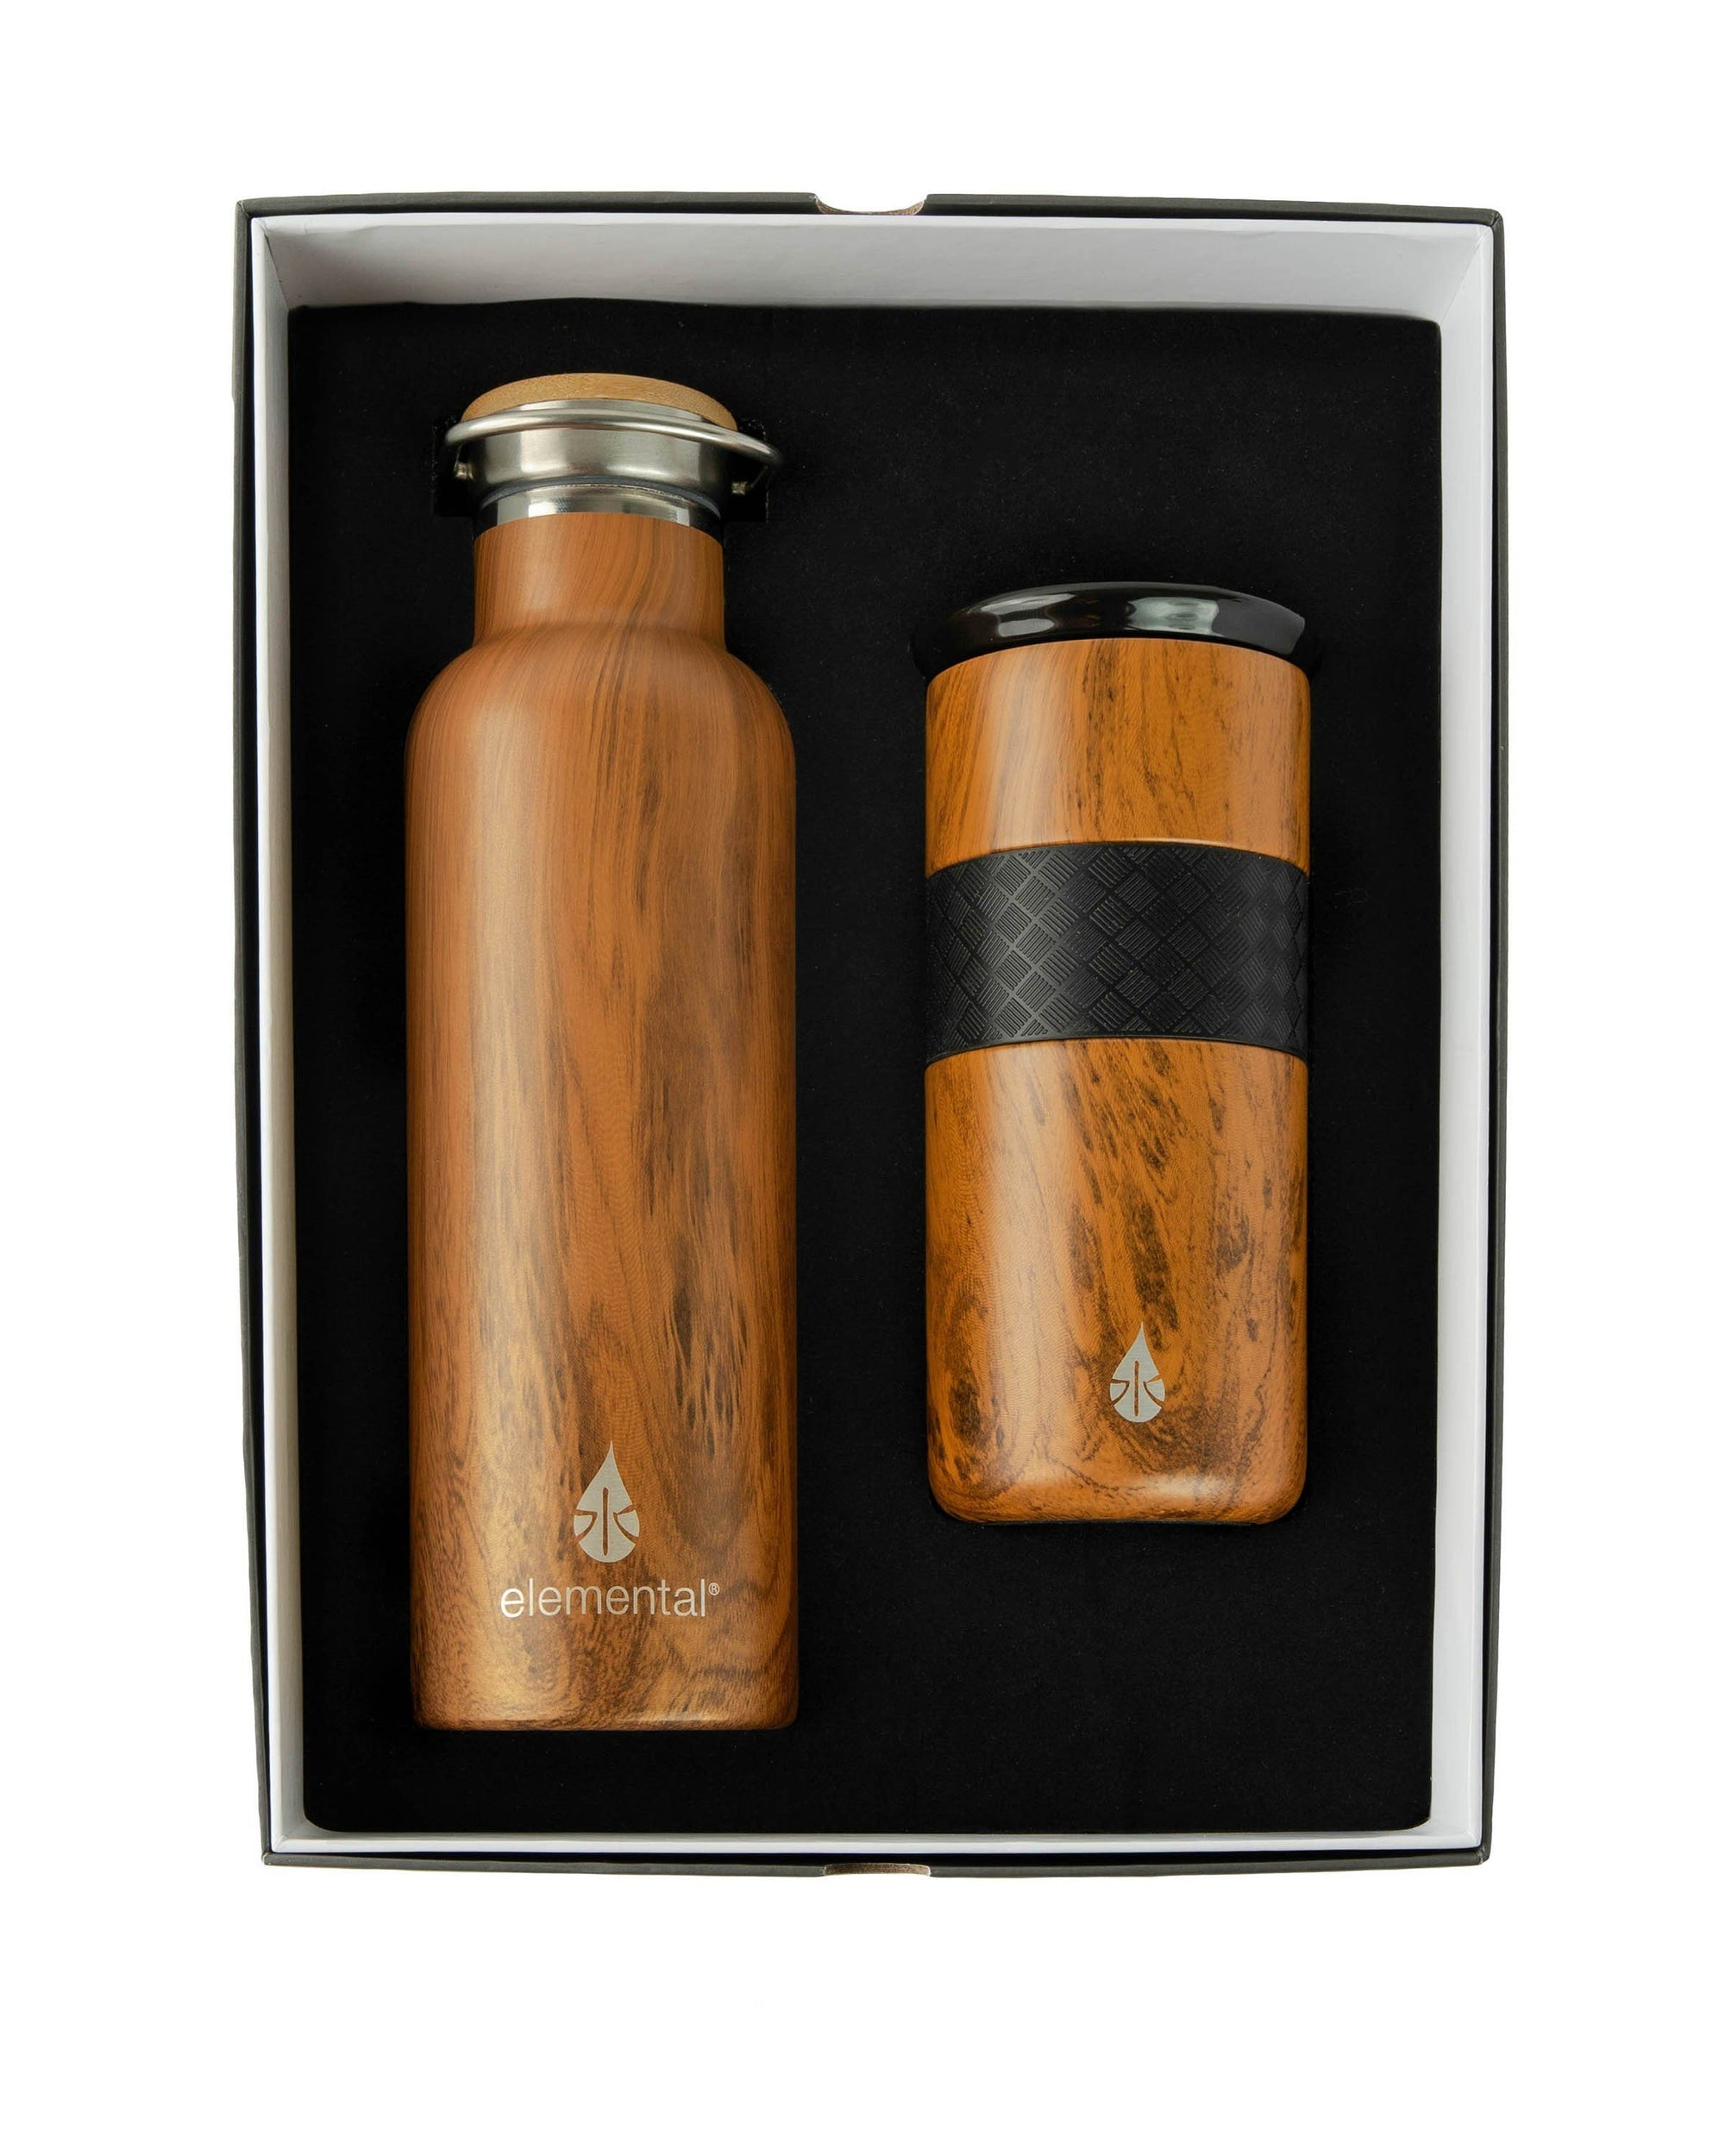 Elemental Gift Set - Teak Wood